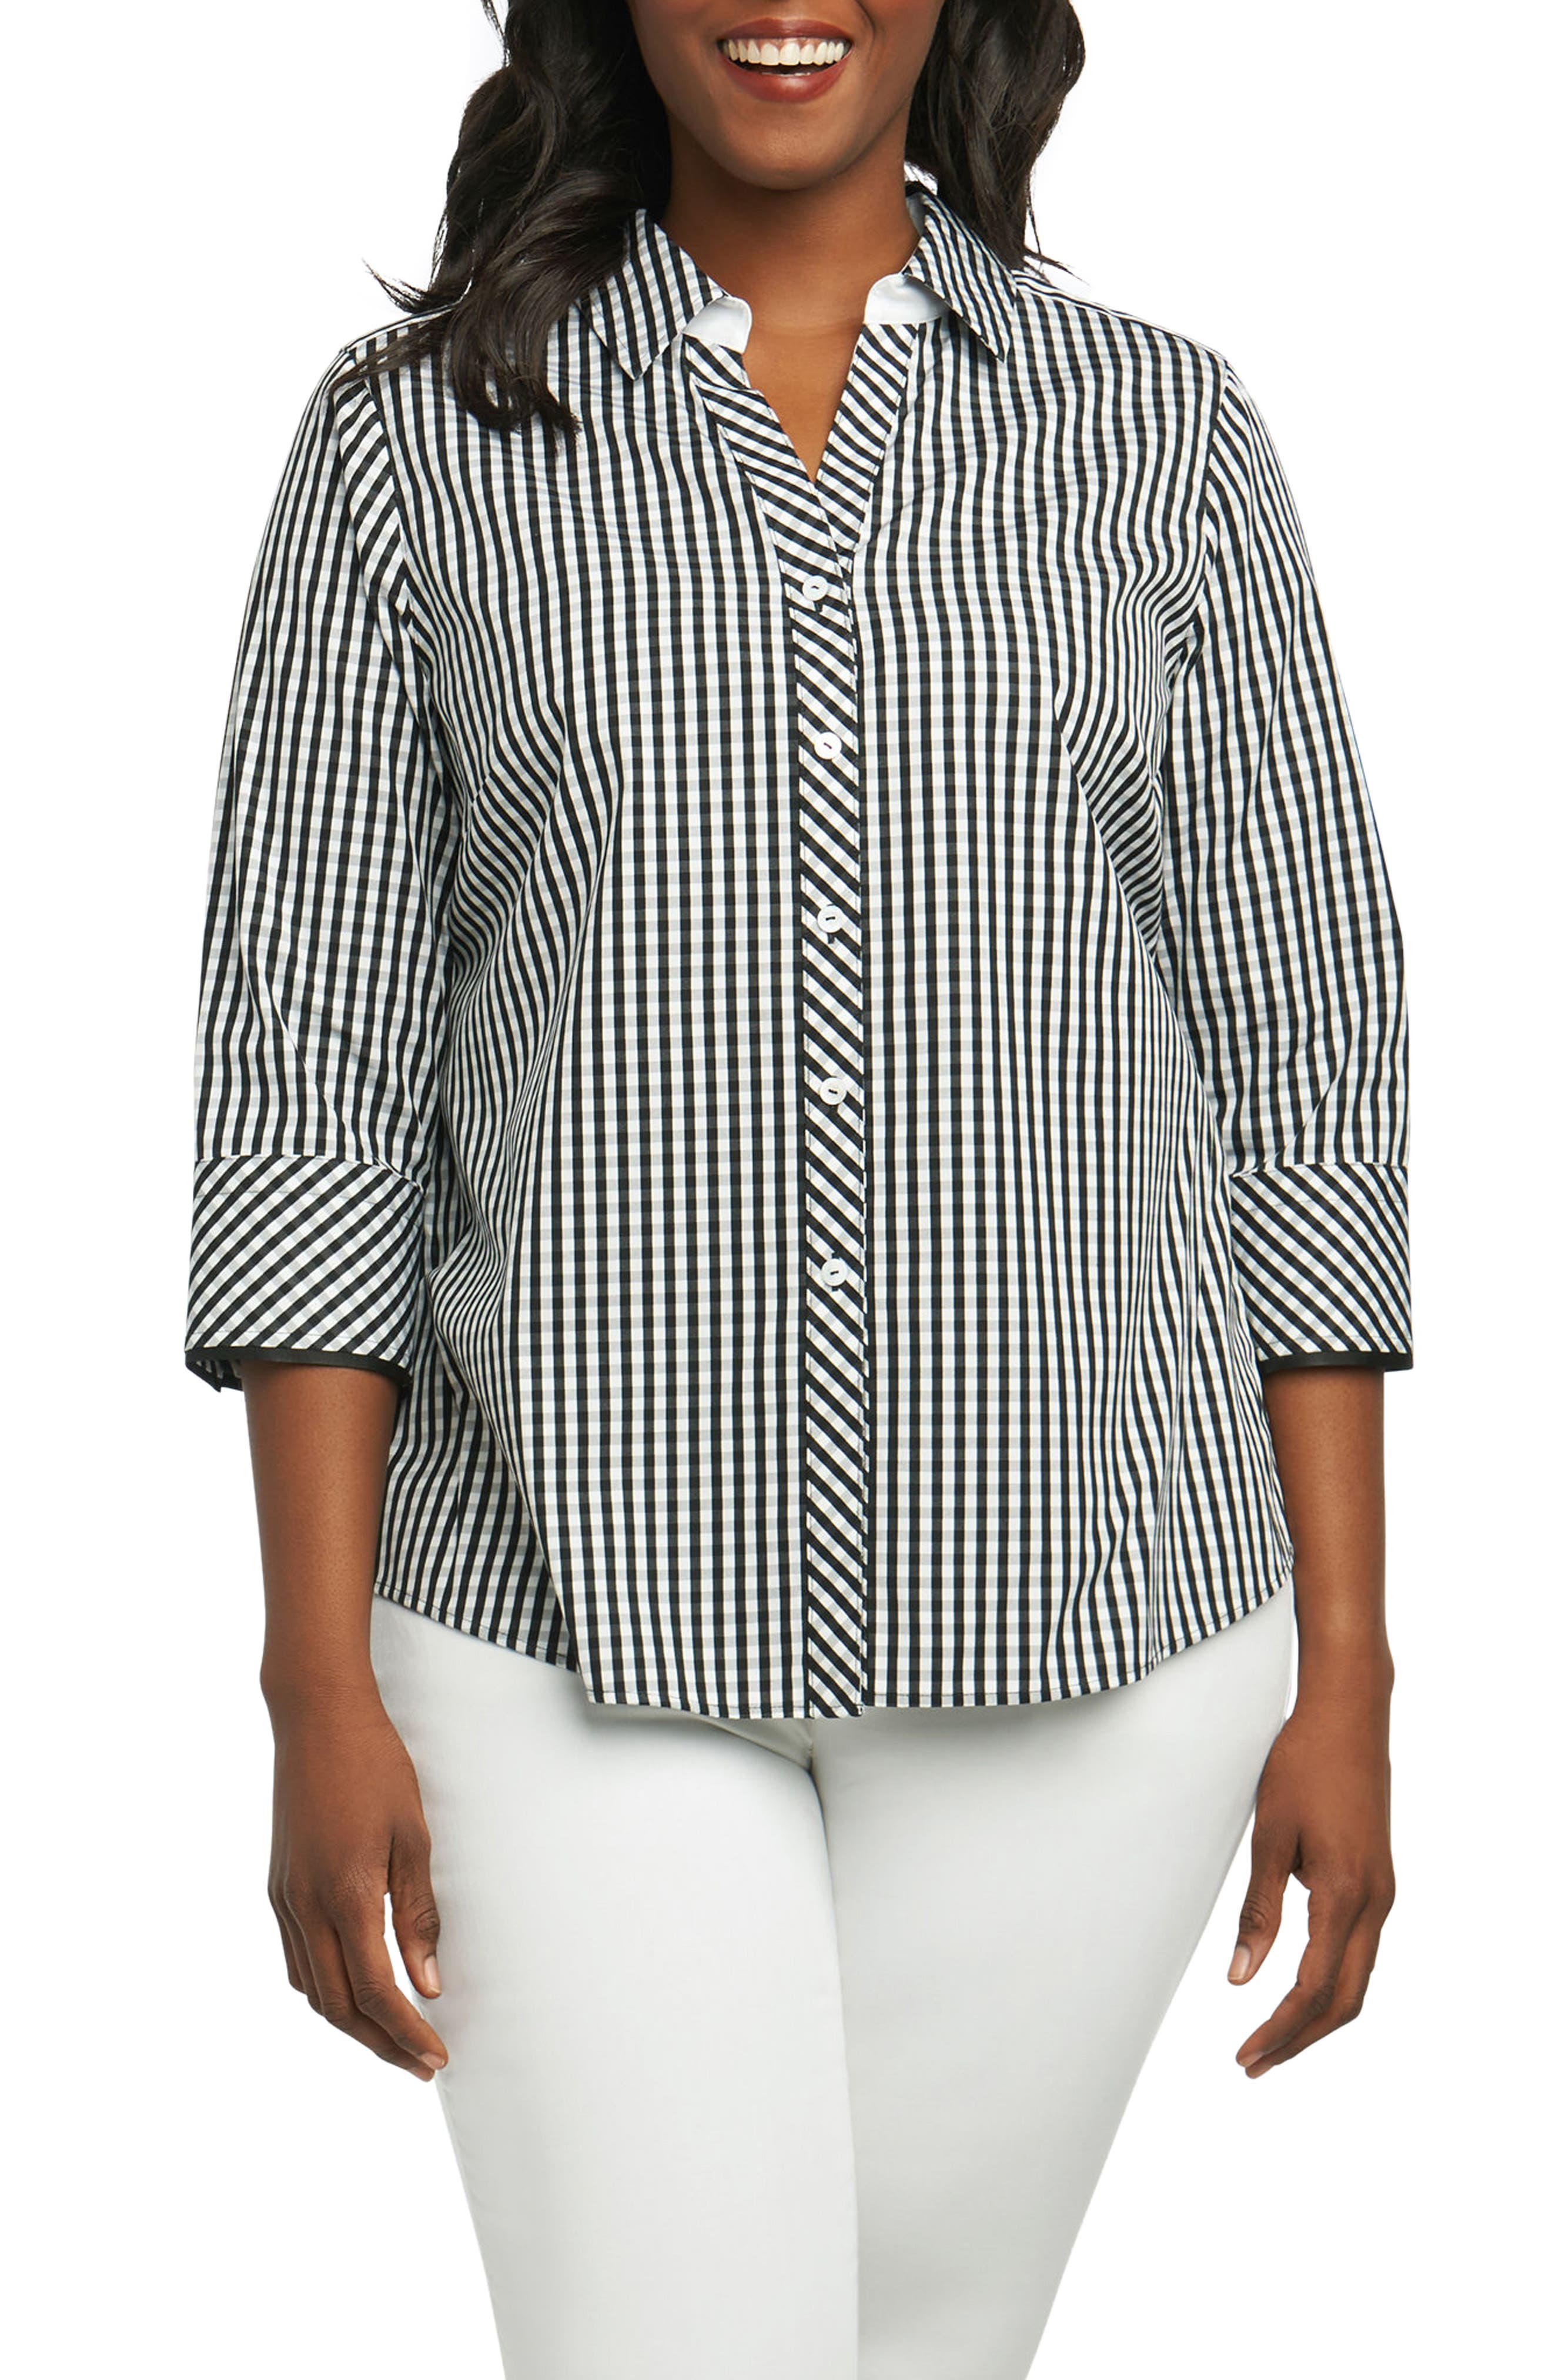 Mary Gingham Wrinkle Free Shirt,                         Main,                         color, 002